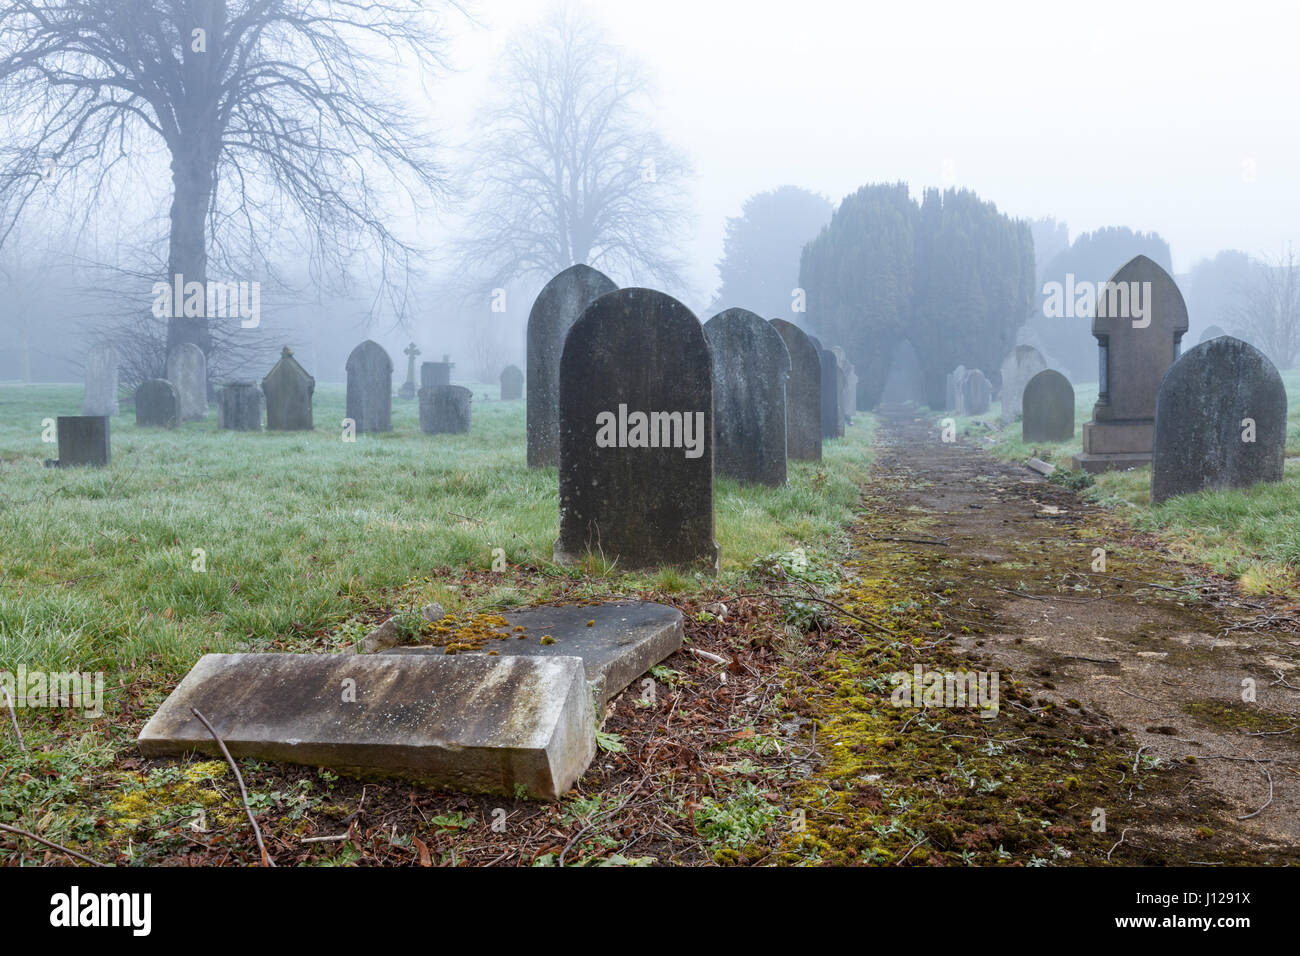 Fallen gravestone and other graves on a misty day at a cemetery, England, UK - Stock Image